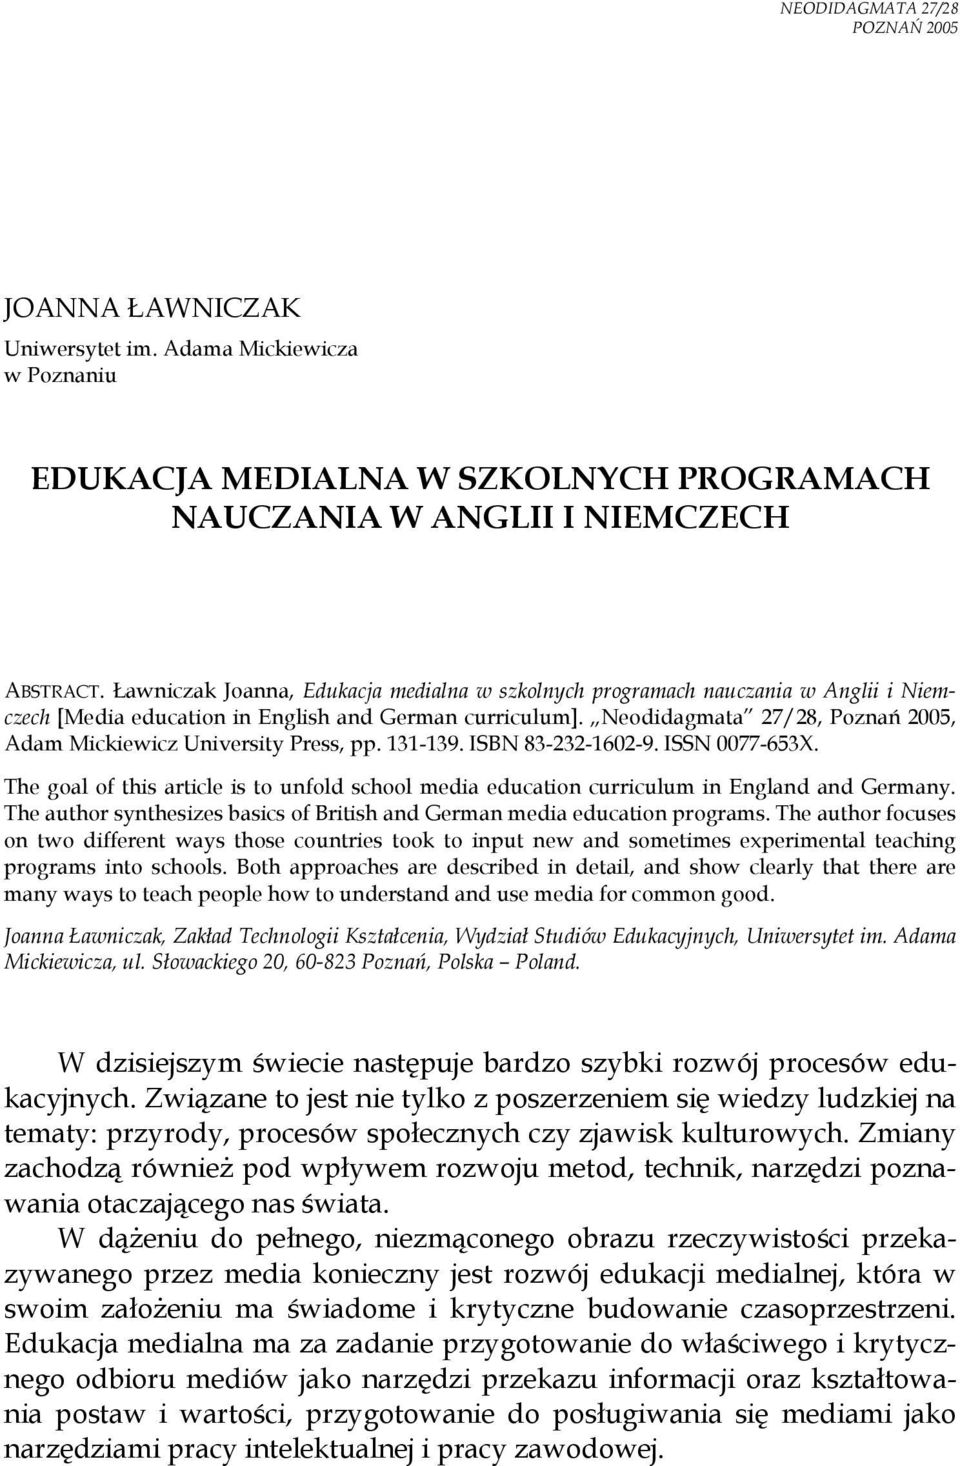 Neodidagmata 27/28, Poznań 2005, Adam Mickiewicz University Press, pp. 131-139. ISBN 83-232-1602-9. ISSN 0077-653X.